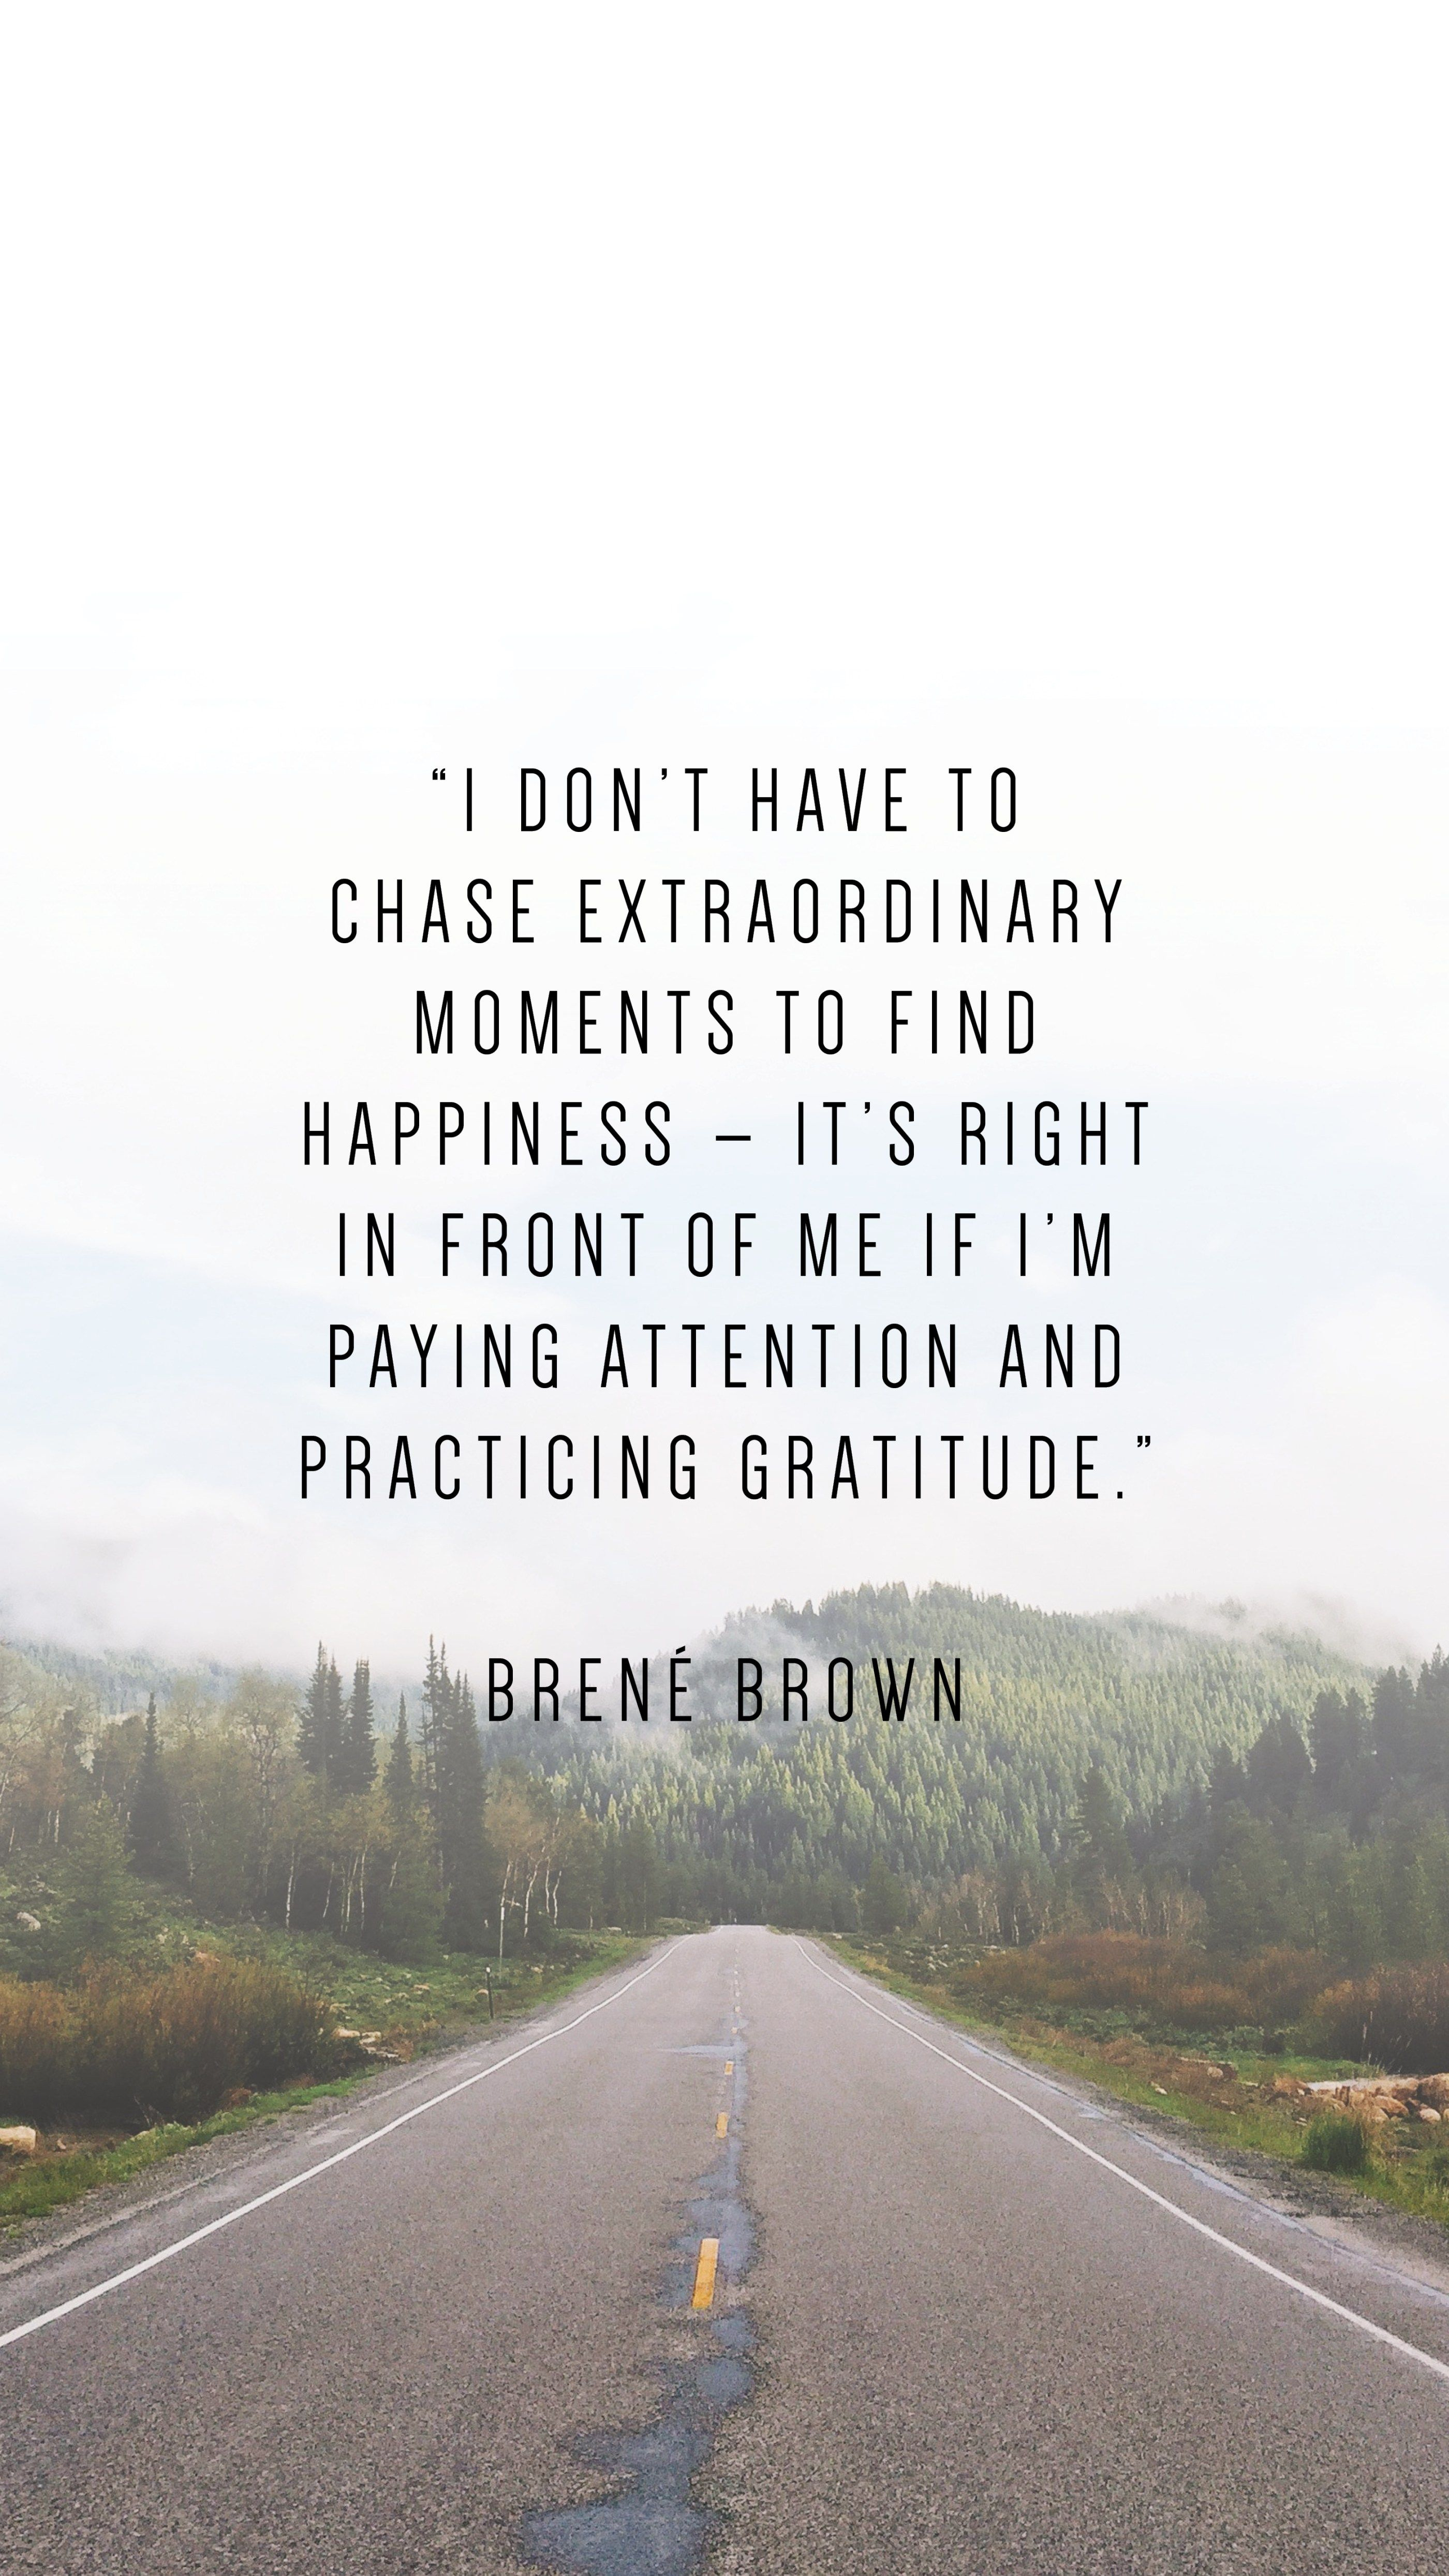 """I don't have to chase extraordinary moments to find happiness —it's right in front of me if i'm paying attention and practicing gratitude.""— Brené Brown   quotes, quotes to live by and quotes about gratitude #quotes #mindfulness #wanderlust"